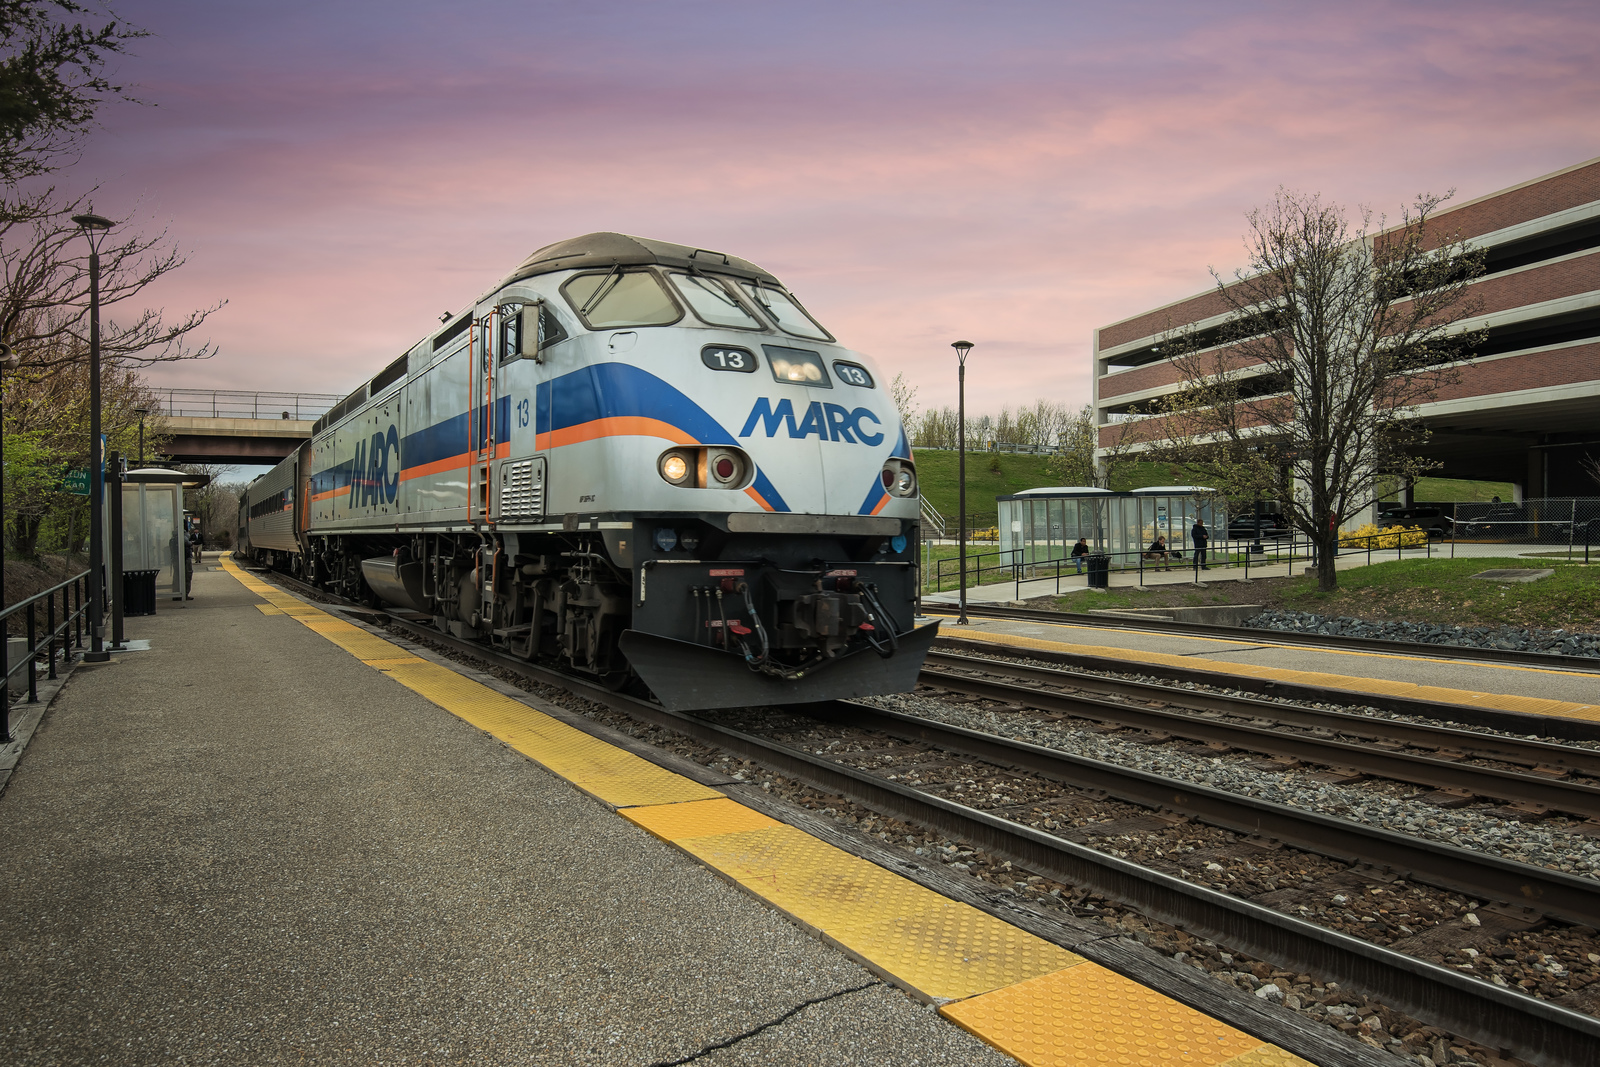 Take the MARC train for an easy commute to anywhere in the Baltimore area!